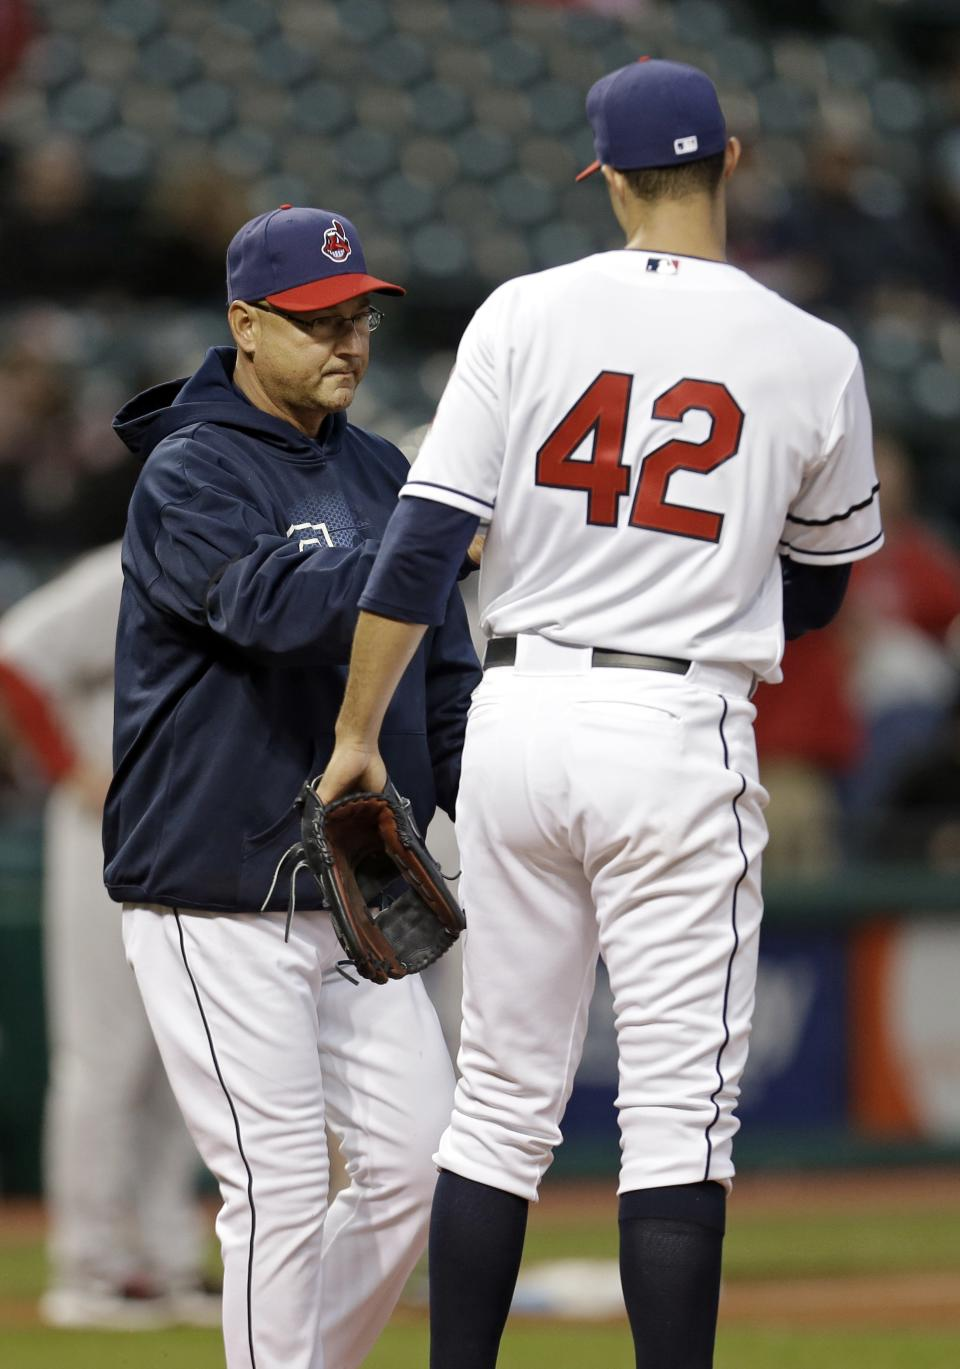 Cleveland Indians manager Terry Francona, left, takes starting pitcher Ubaldo Jimenez out of a baseball game against the Boston Red Sox in the second inning Tuesday, April 16, 2013, in Cleveland. (AP Photo/Mark Duncan)